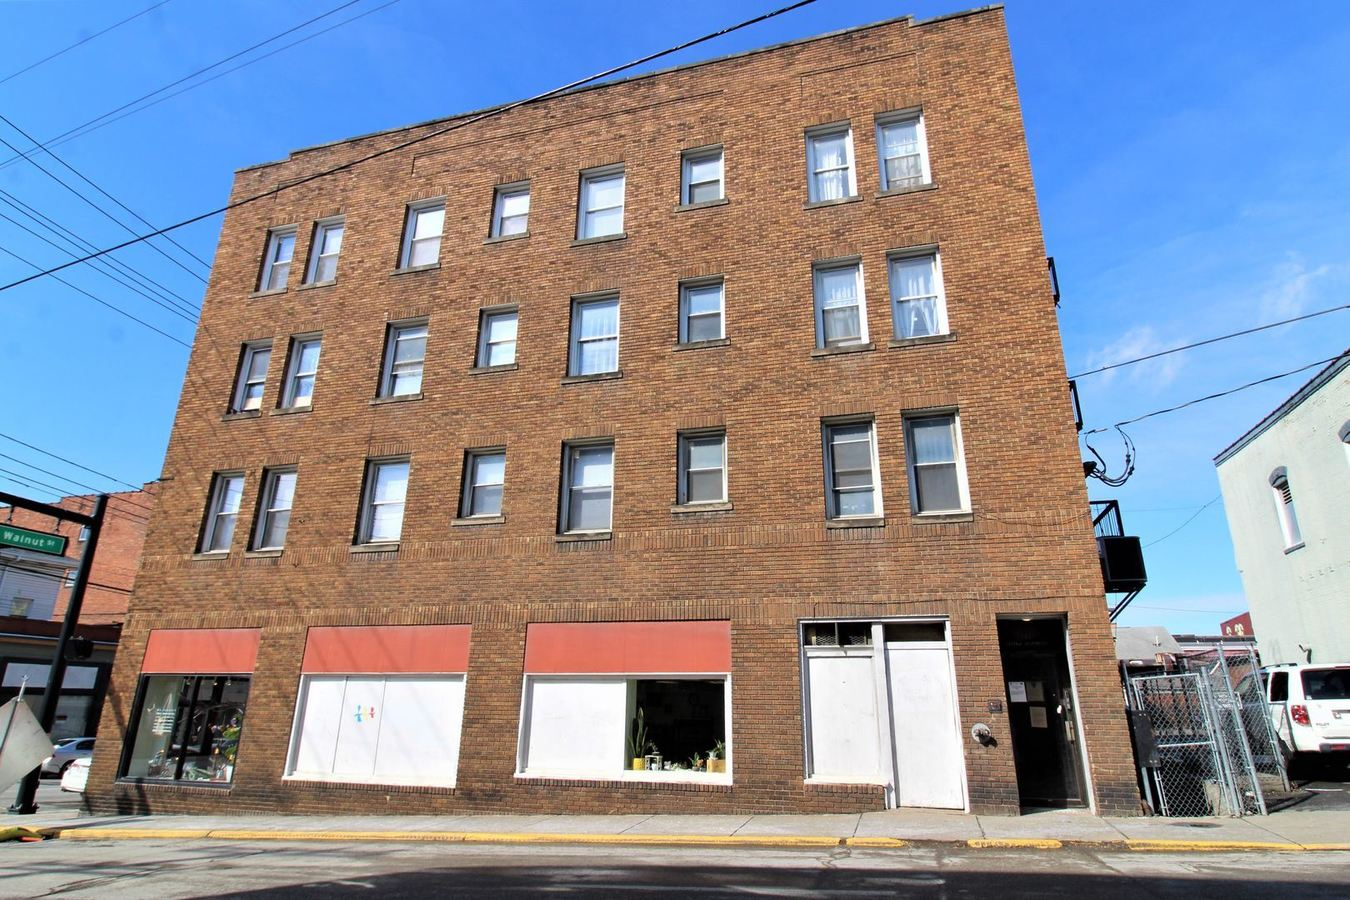 1 Bedroom 1 Bathroom Apartment for rent at 311 Spruce, 241/243/245 Walnut in Morgantown, WV